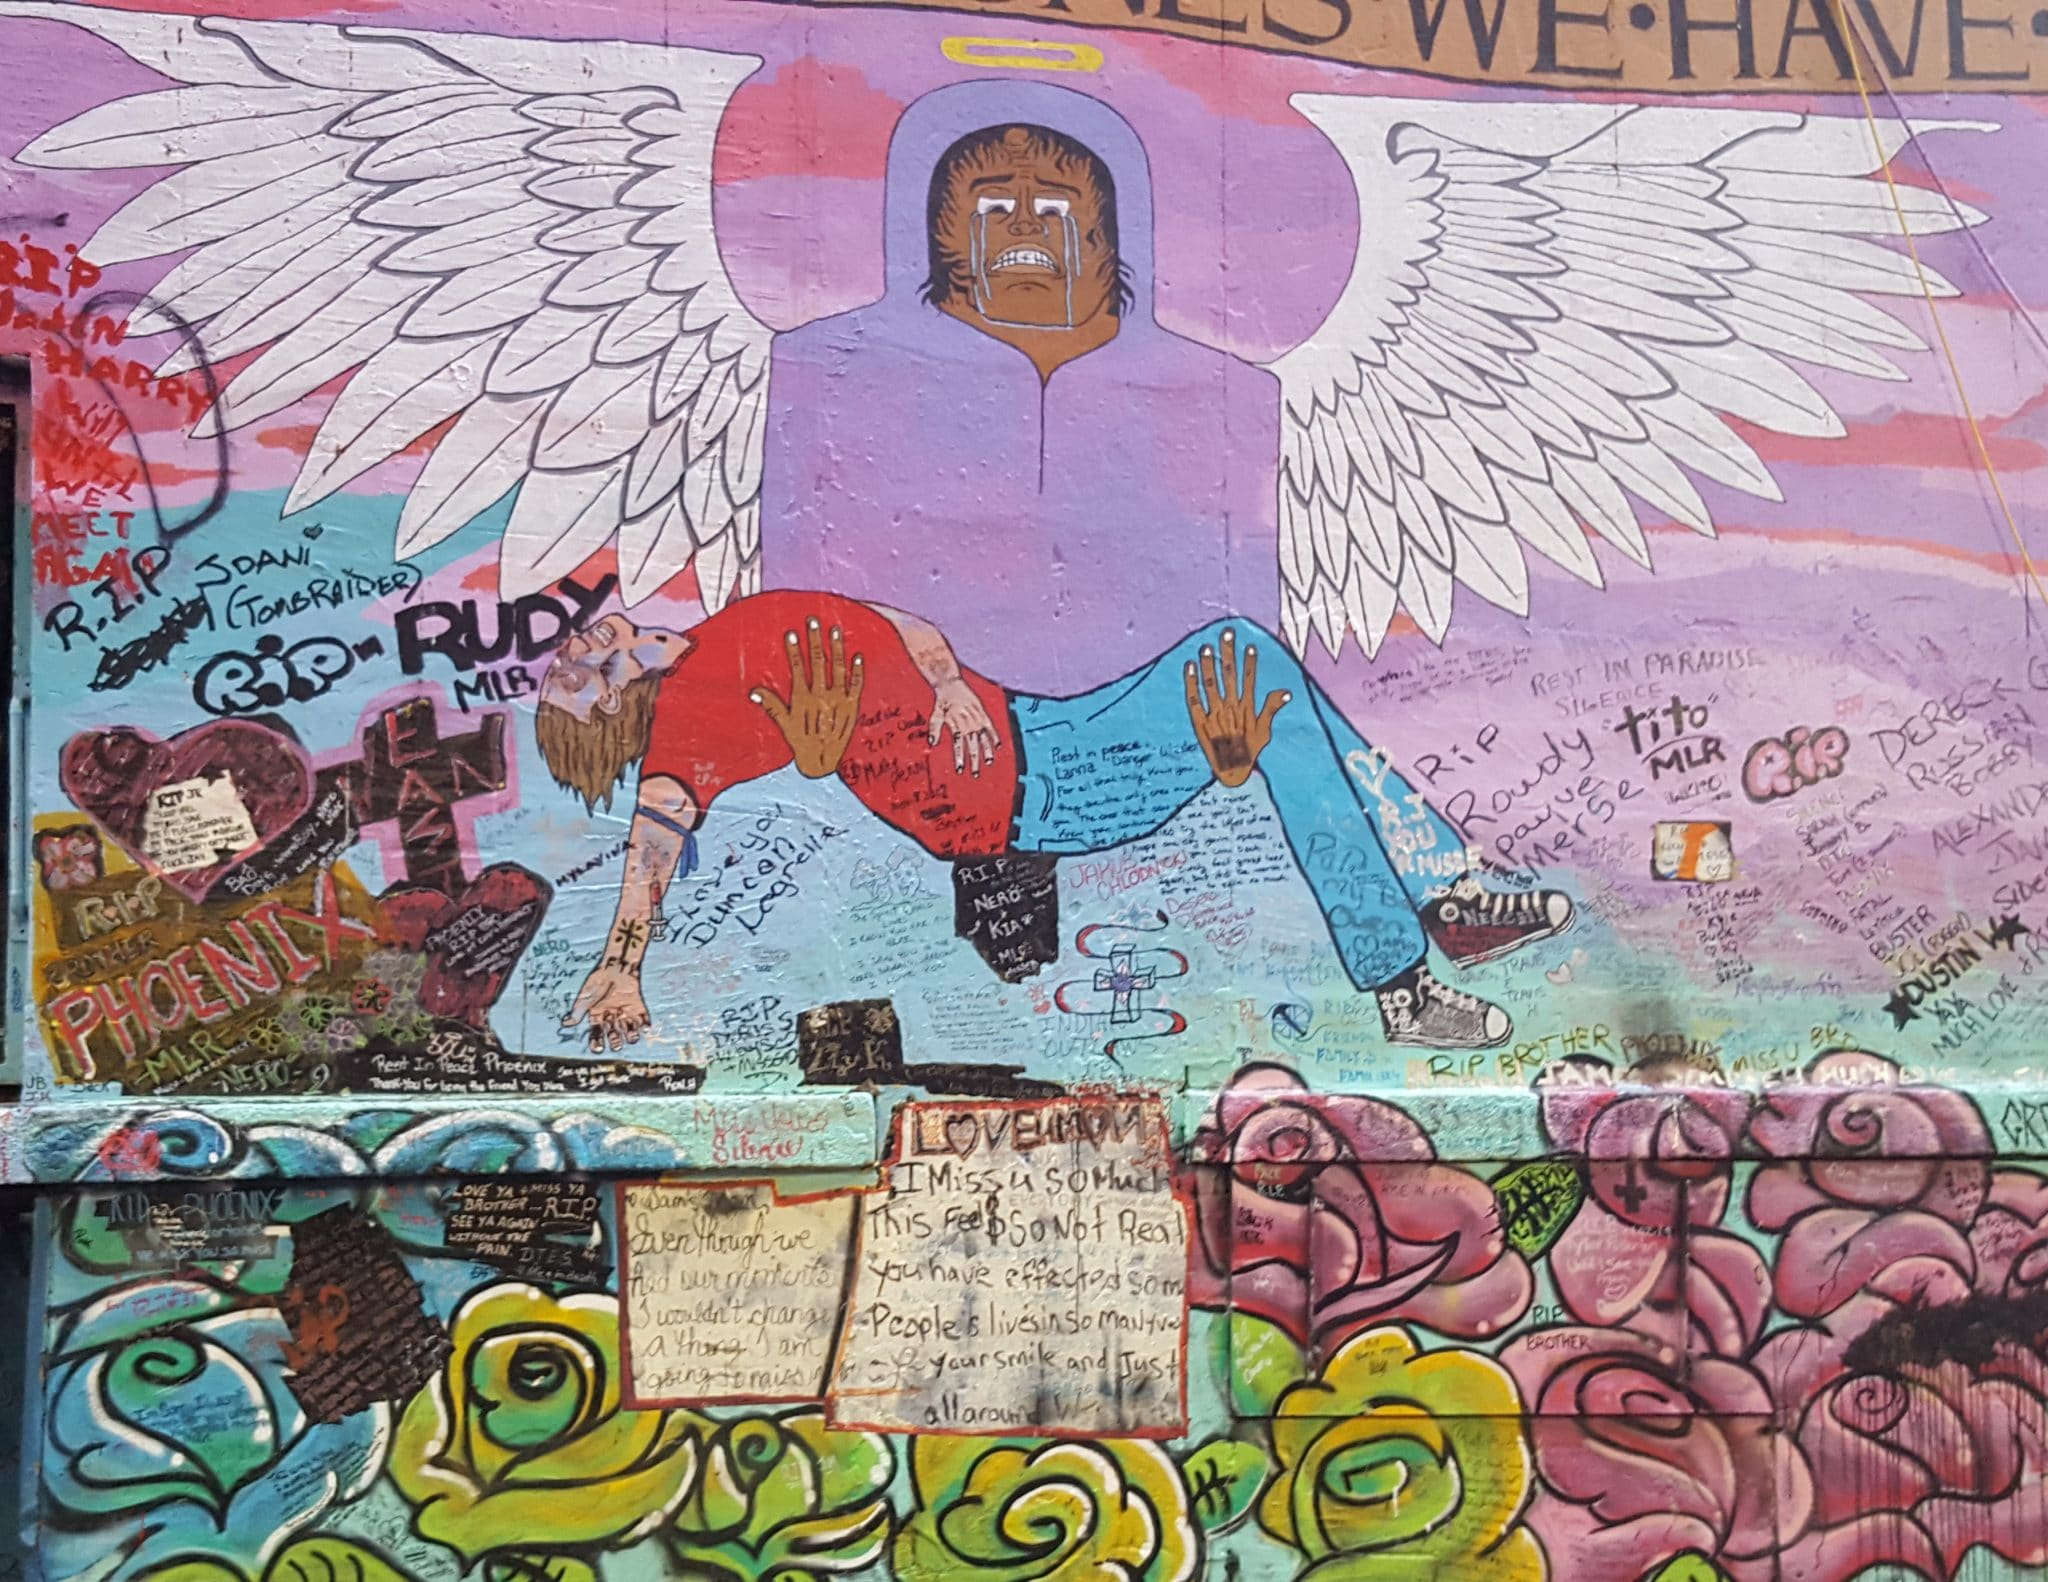 Graffiti mural of an angel lifting up somemone who is deceased | outcomes of prohibition